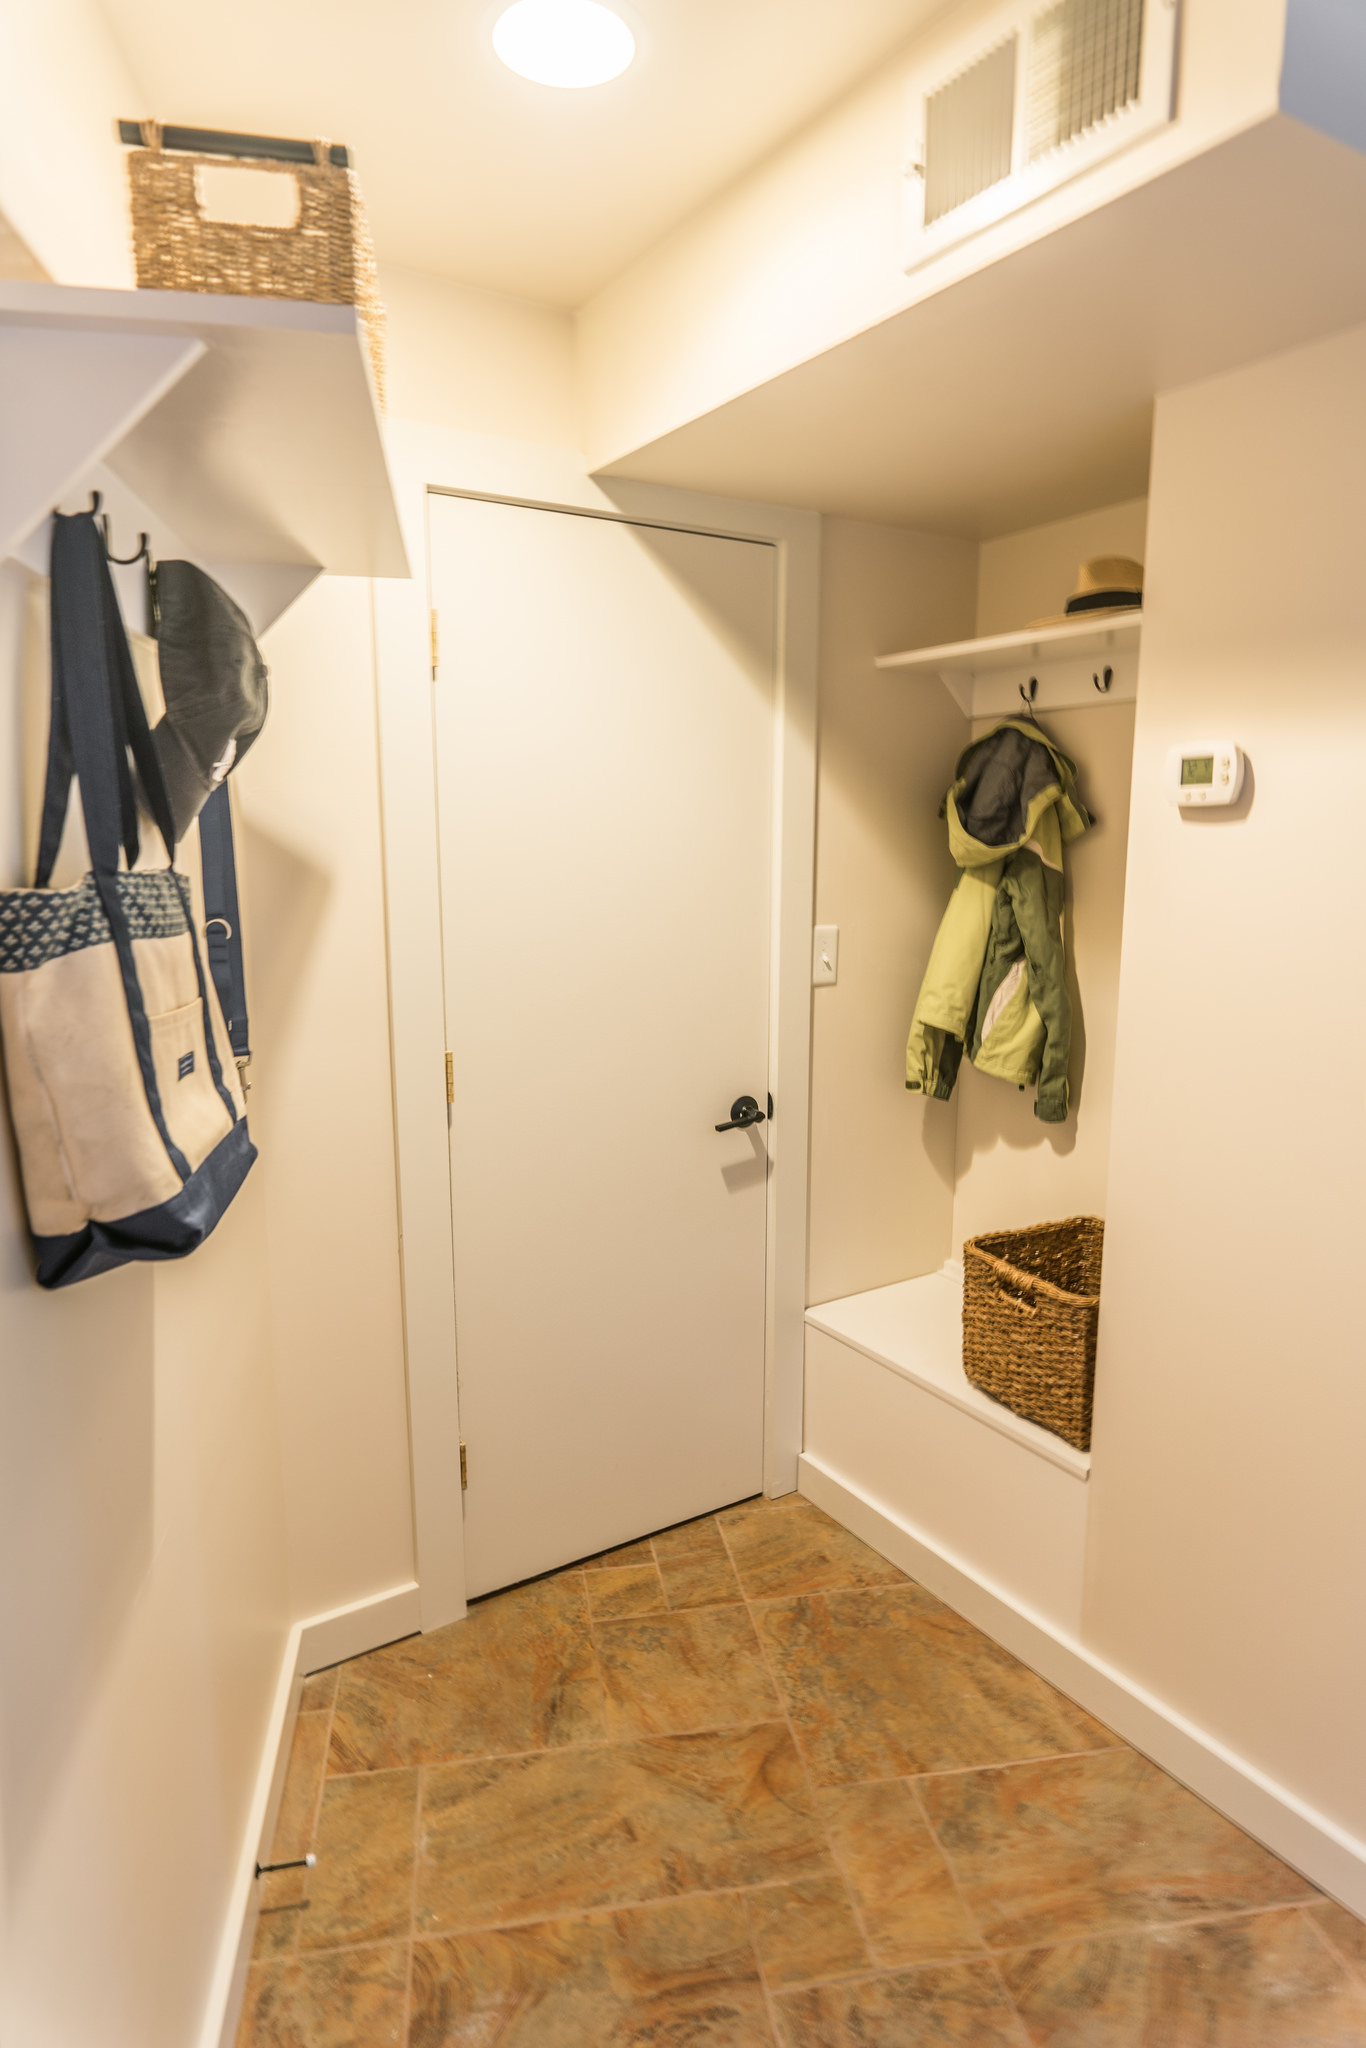 Cubby/storage area off side entrance